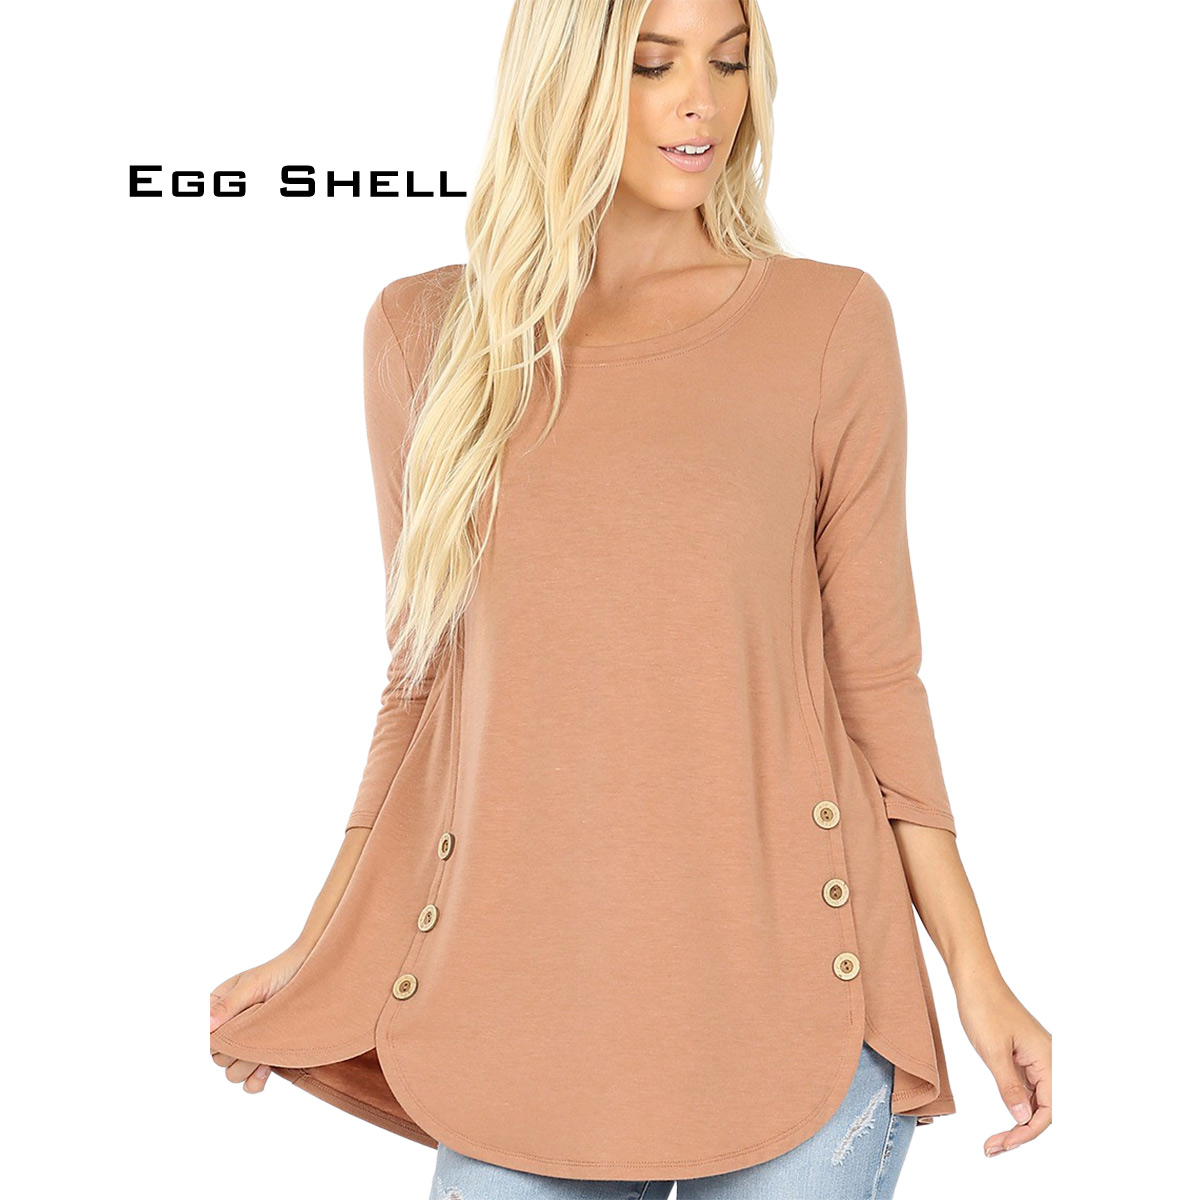 EGG SHELL 3/4 Sleeve Side Wood Buttons Top 2032